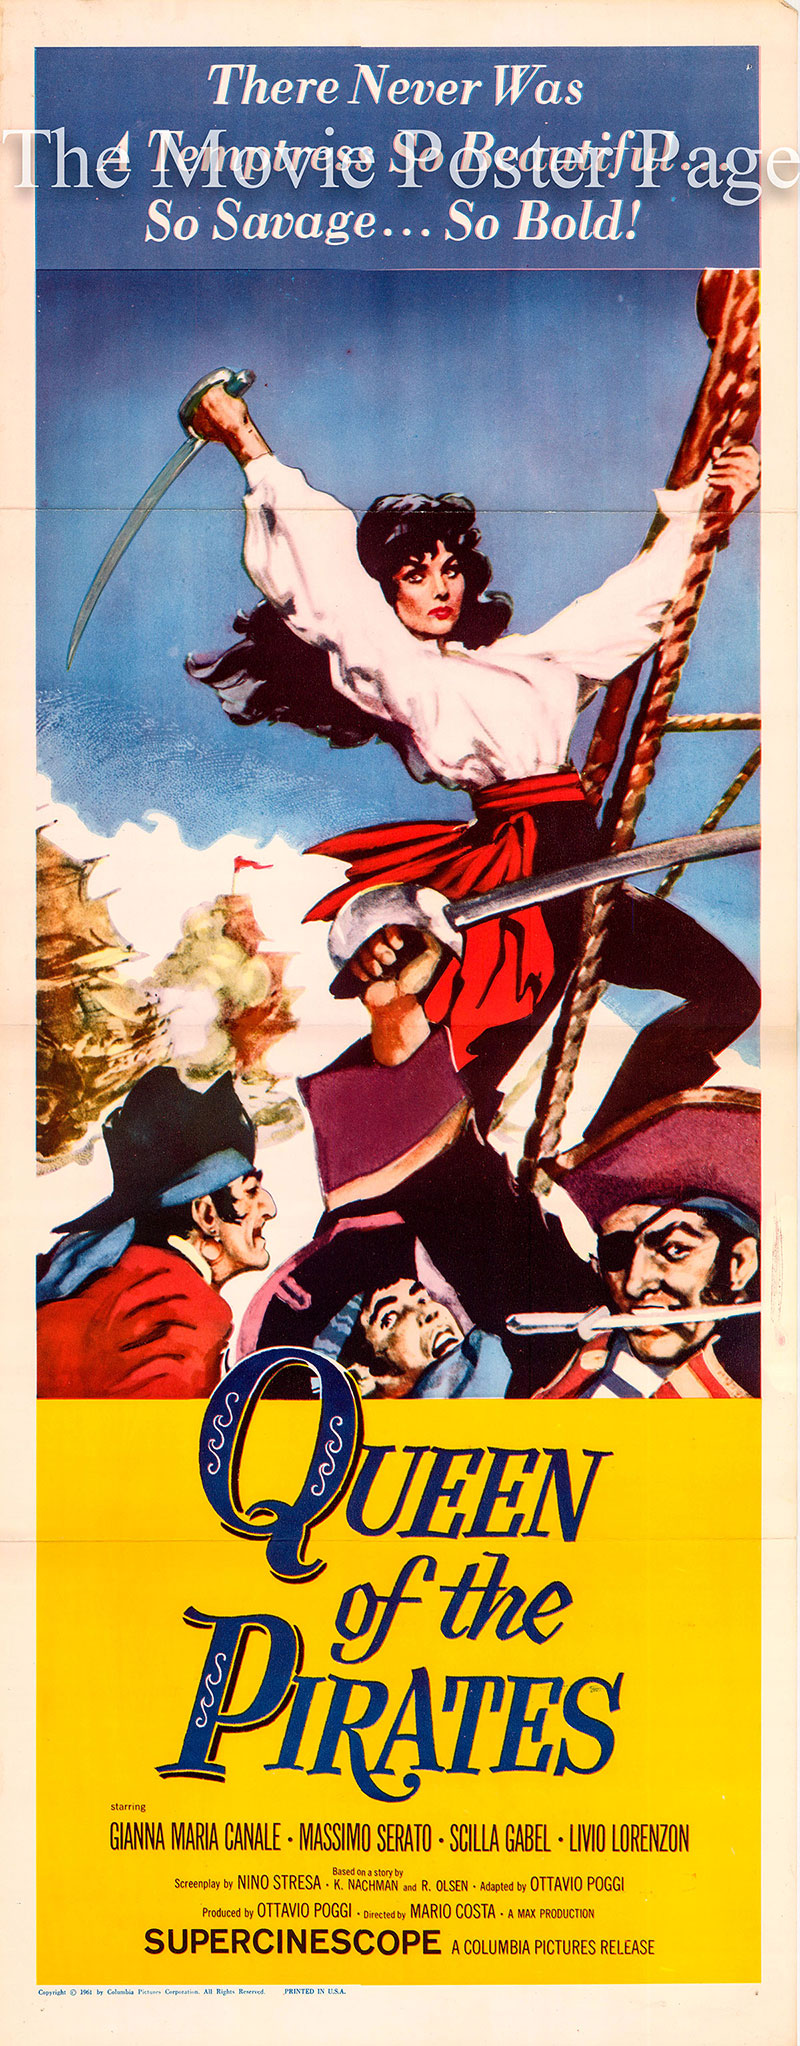 Pictured is a US one-sheet promotional poster for the 1961 Mario Costa film Queen of the Pirates starring Gianna Maria Canale.